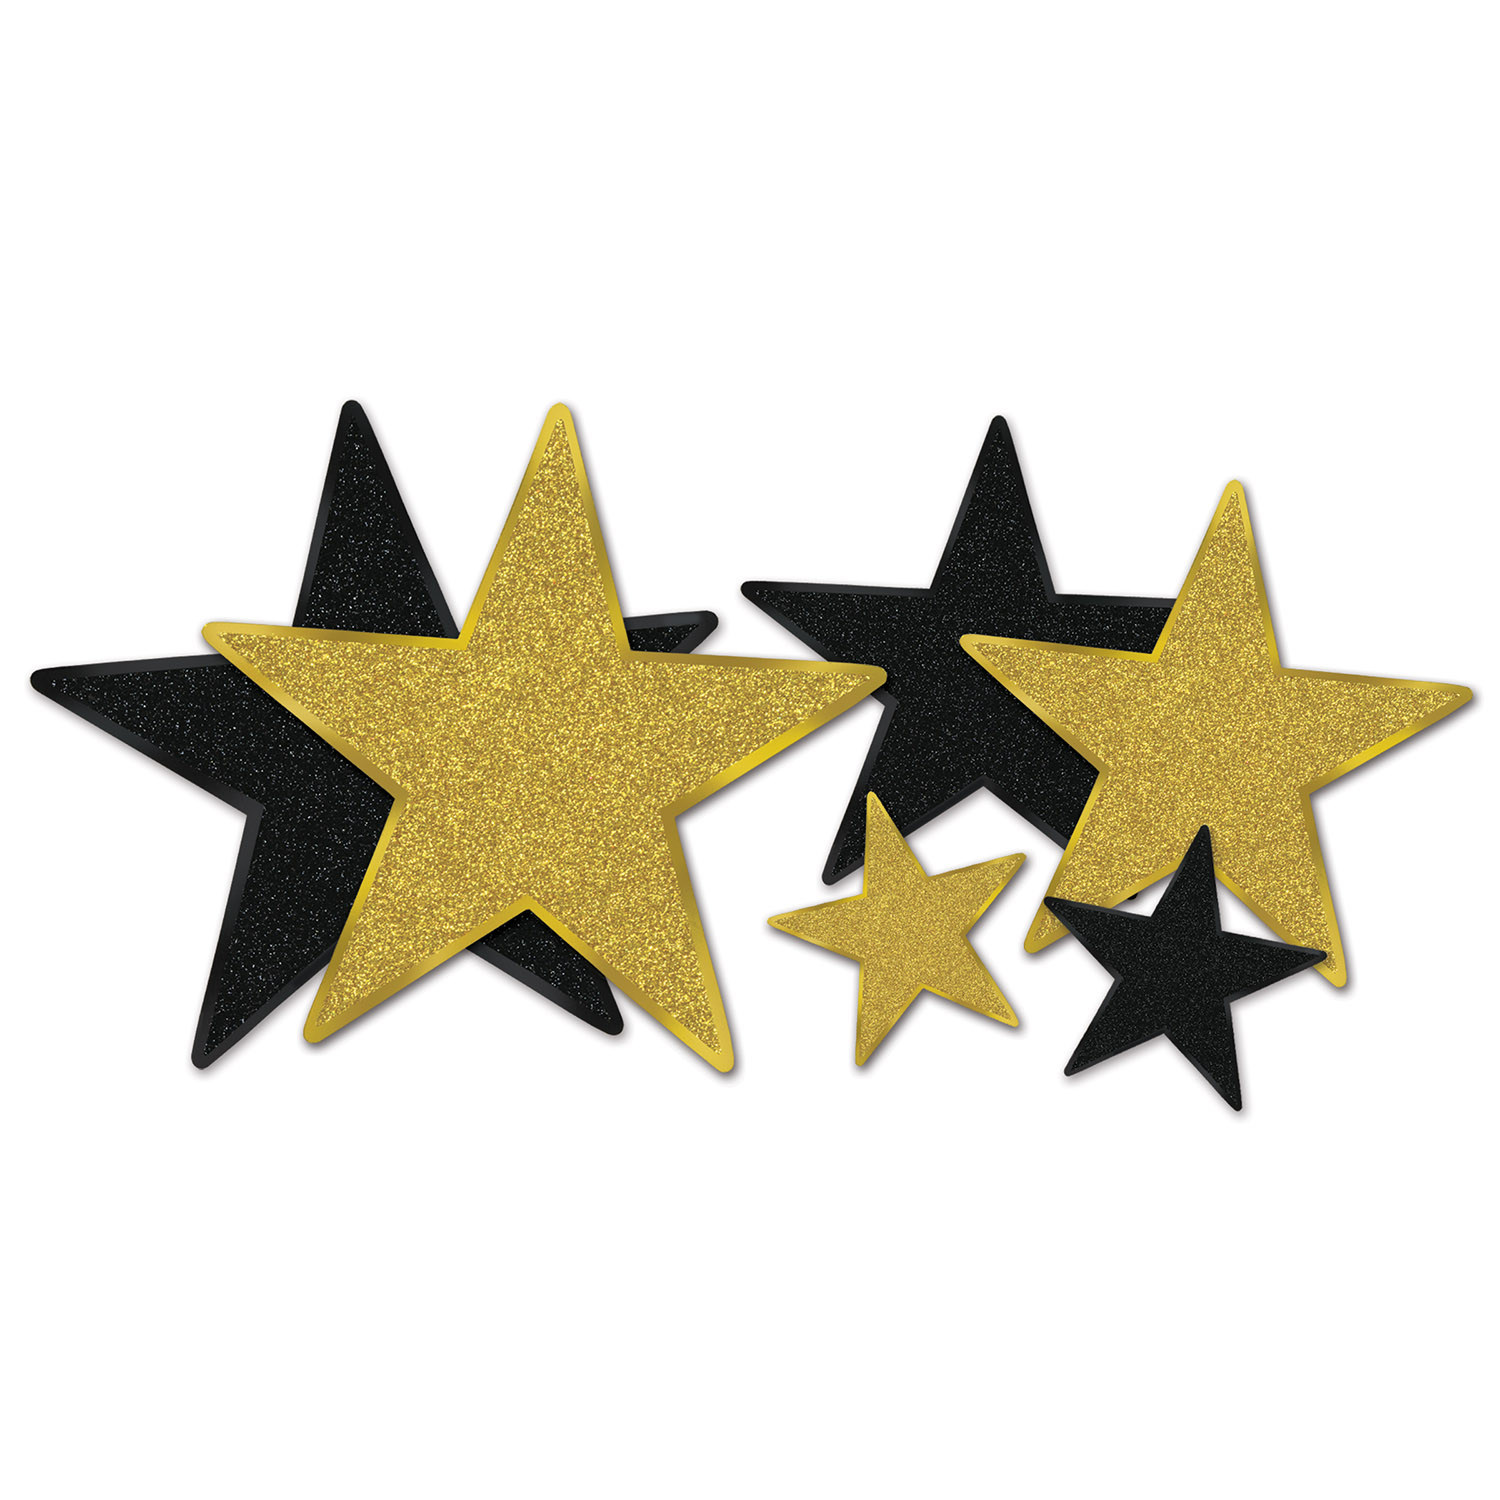 Assorted sized star cutouts in black and gold with glitter.